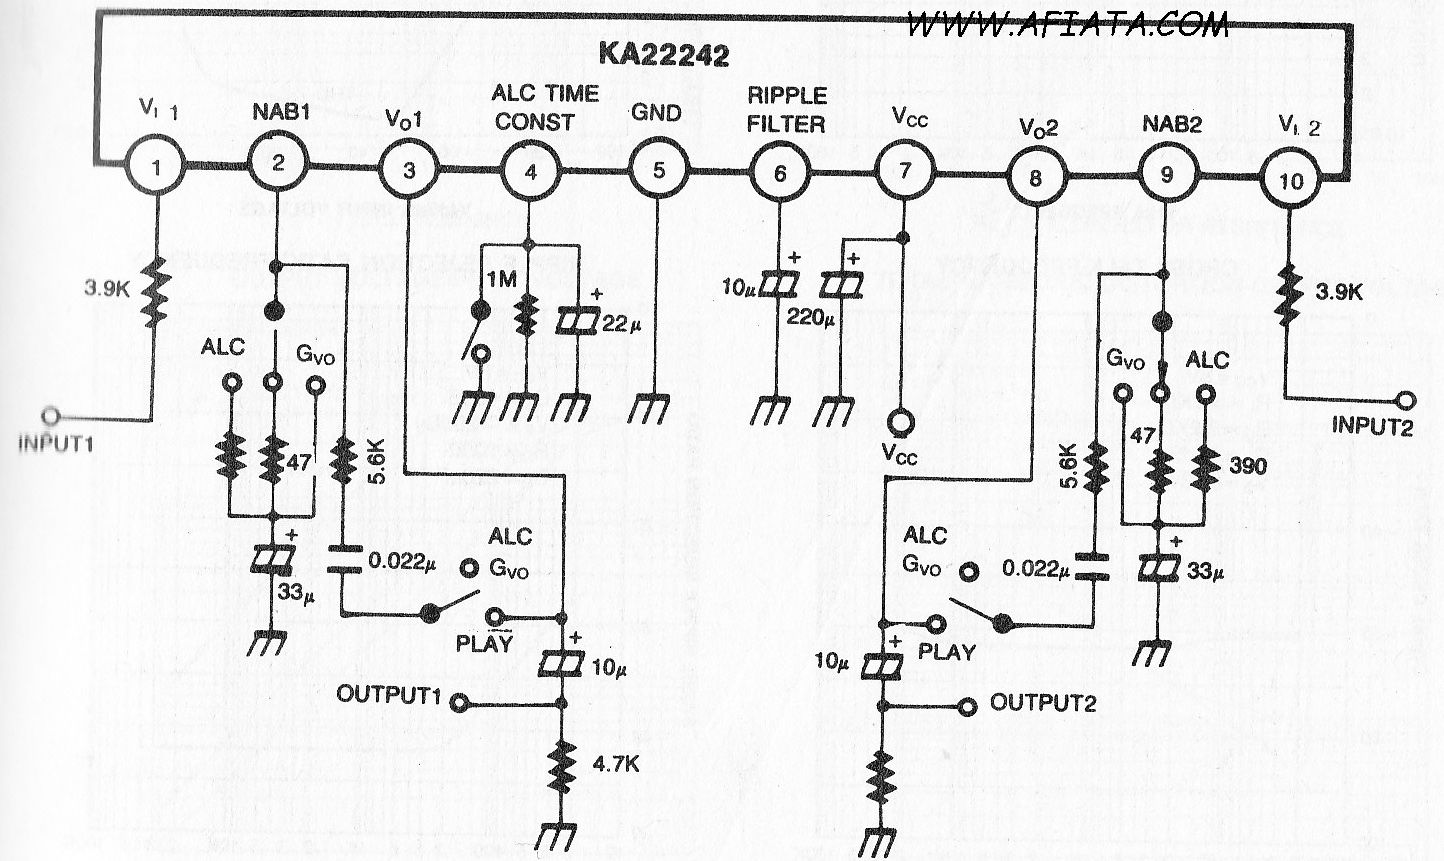 Booster Audio Mixer Circuit Diagram Using Ka